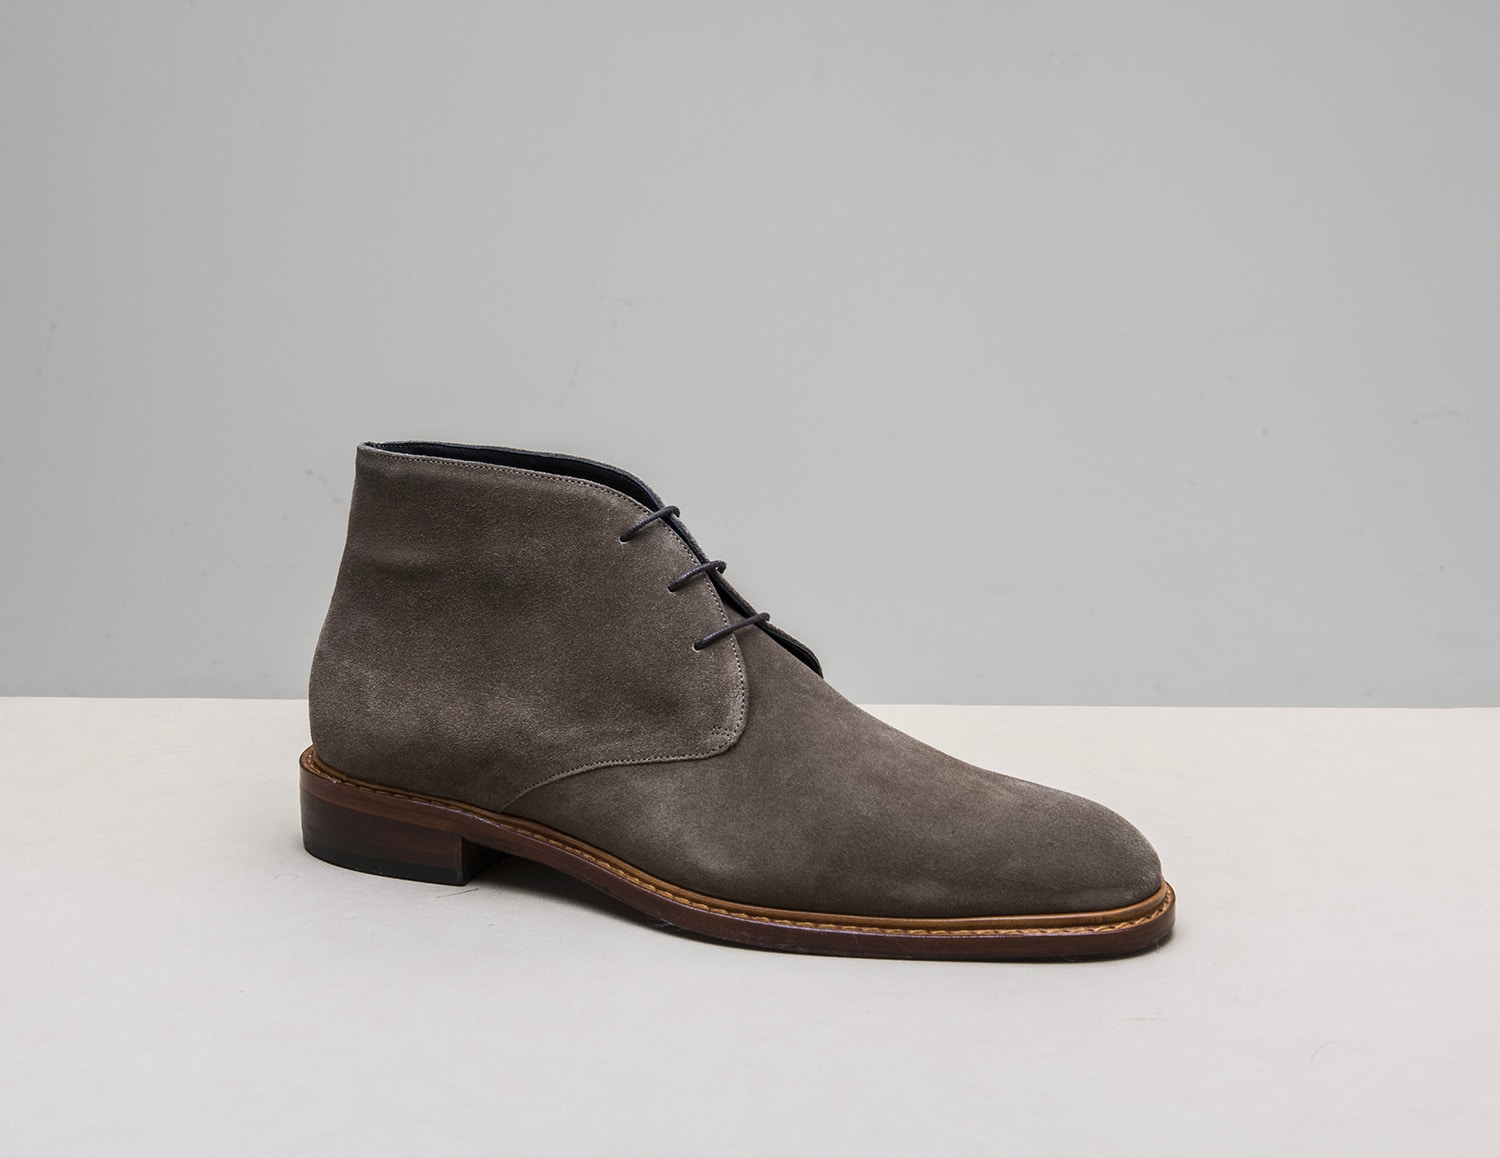 chukkataupe2 - Work boots, City Boots & chukkas : 6 nouvelles versions